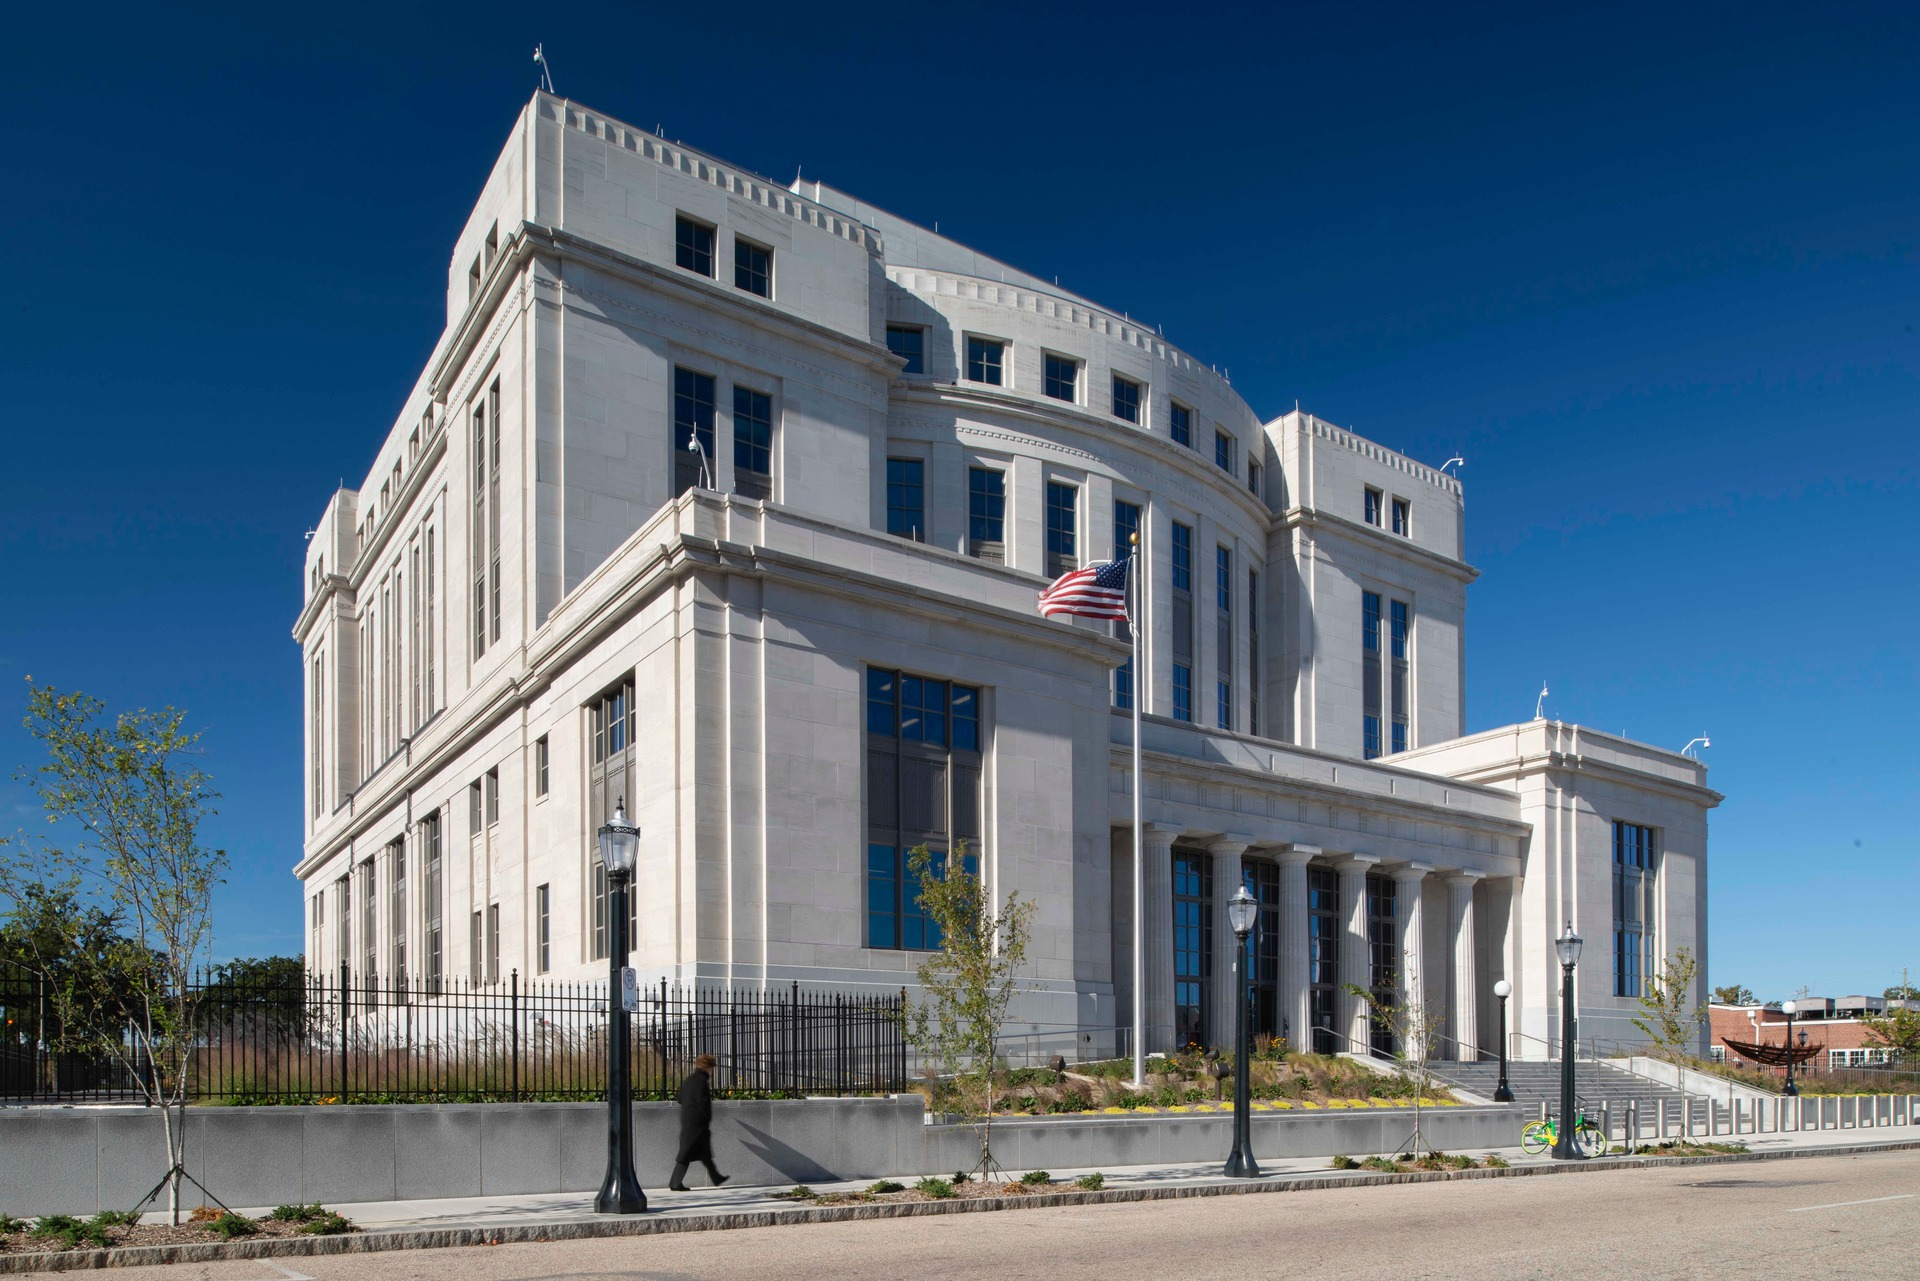 Vetter Stone's Alabama Stone in Silver Shadow color is a stunning and natural look to any building. Seen here on the exterior of the Mobile Courthouse in Alabama.  Photo Credit: Hartman-Cox Architects